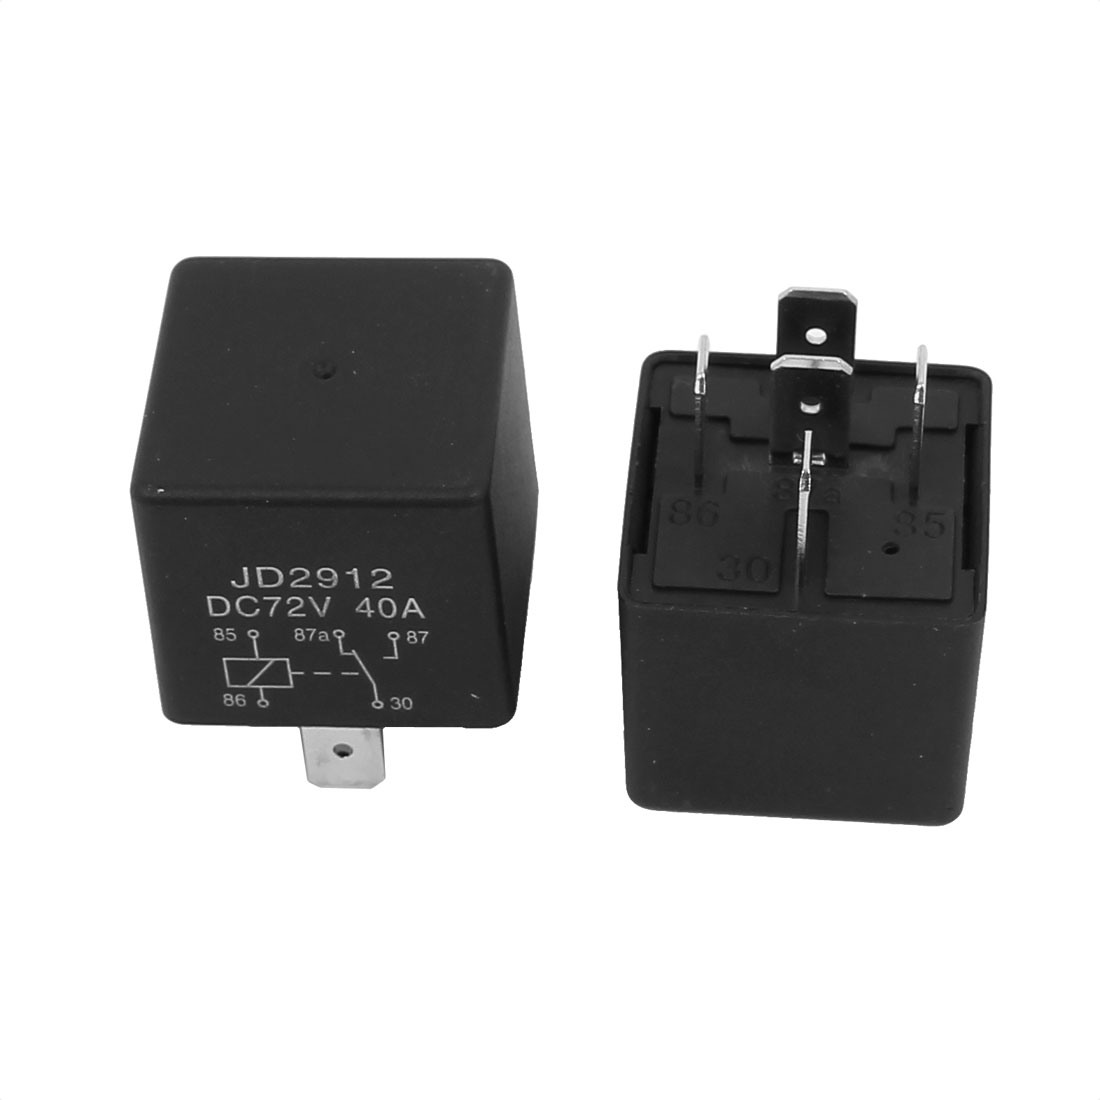 JD2912 DC 72V 40A 5 Pins SPST Vehicle Car Security Power Relay 10pcs - image 2 of 3